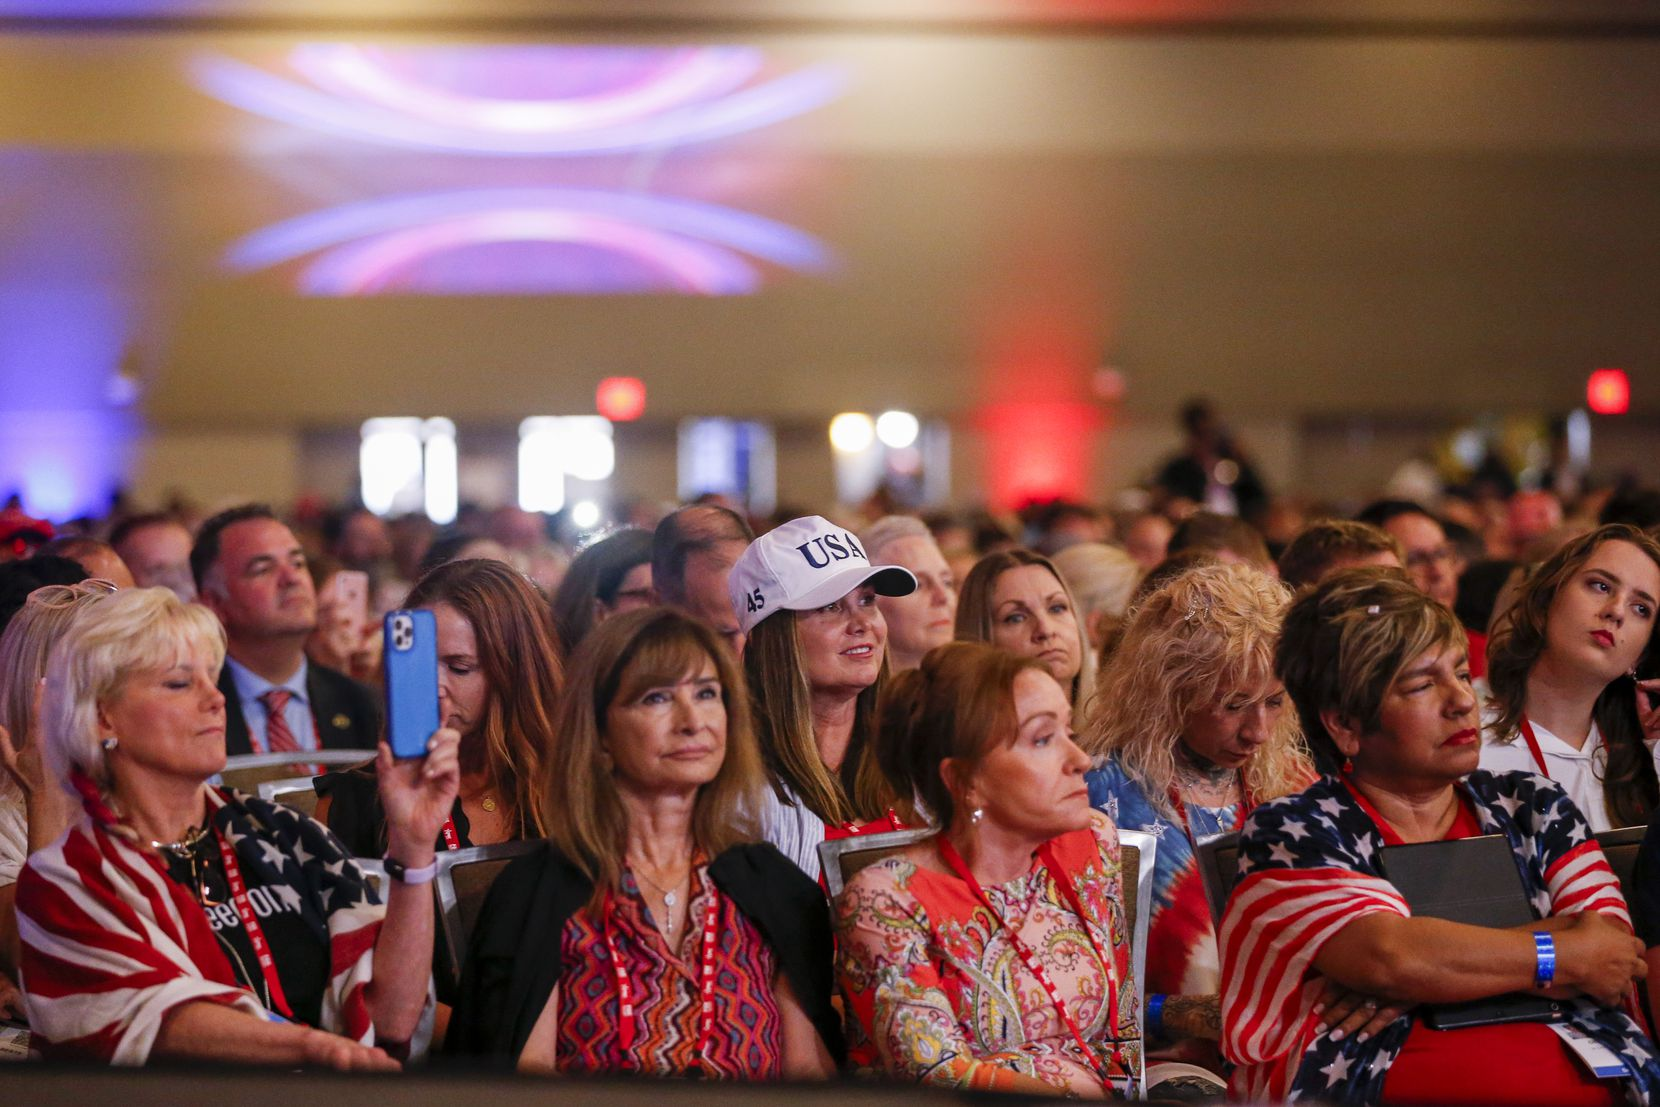 Attendees listen to remarks from Donald Trump Jr. at the Conservative Political Action Conference on Friday, July 9, 2021, in Dallas. (Elias Valverde II/The Dallas Morning News)